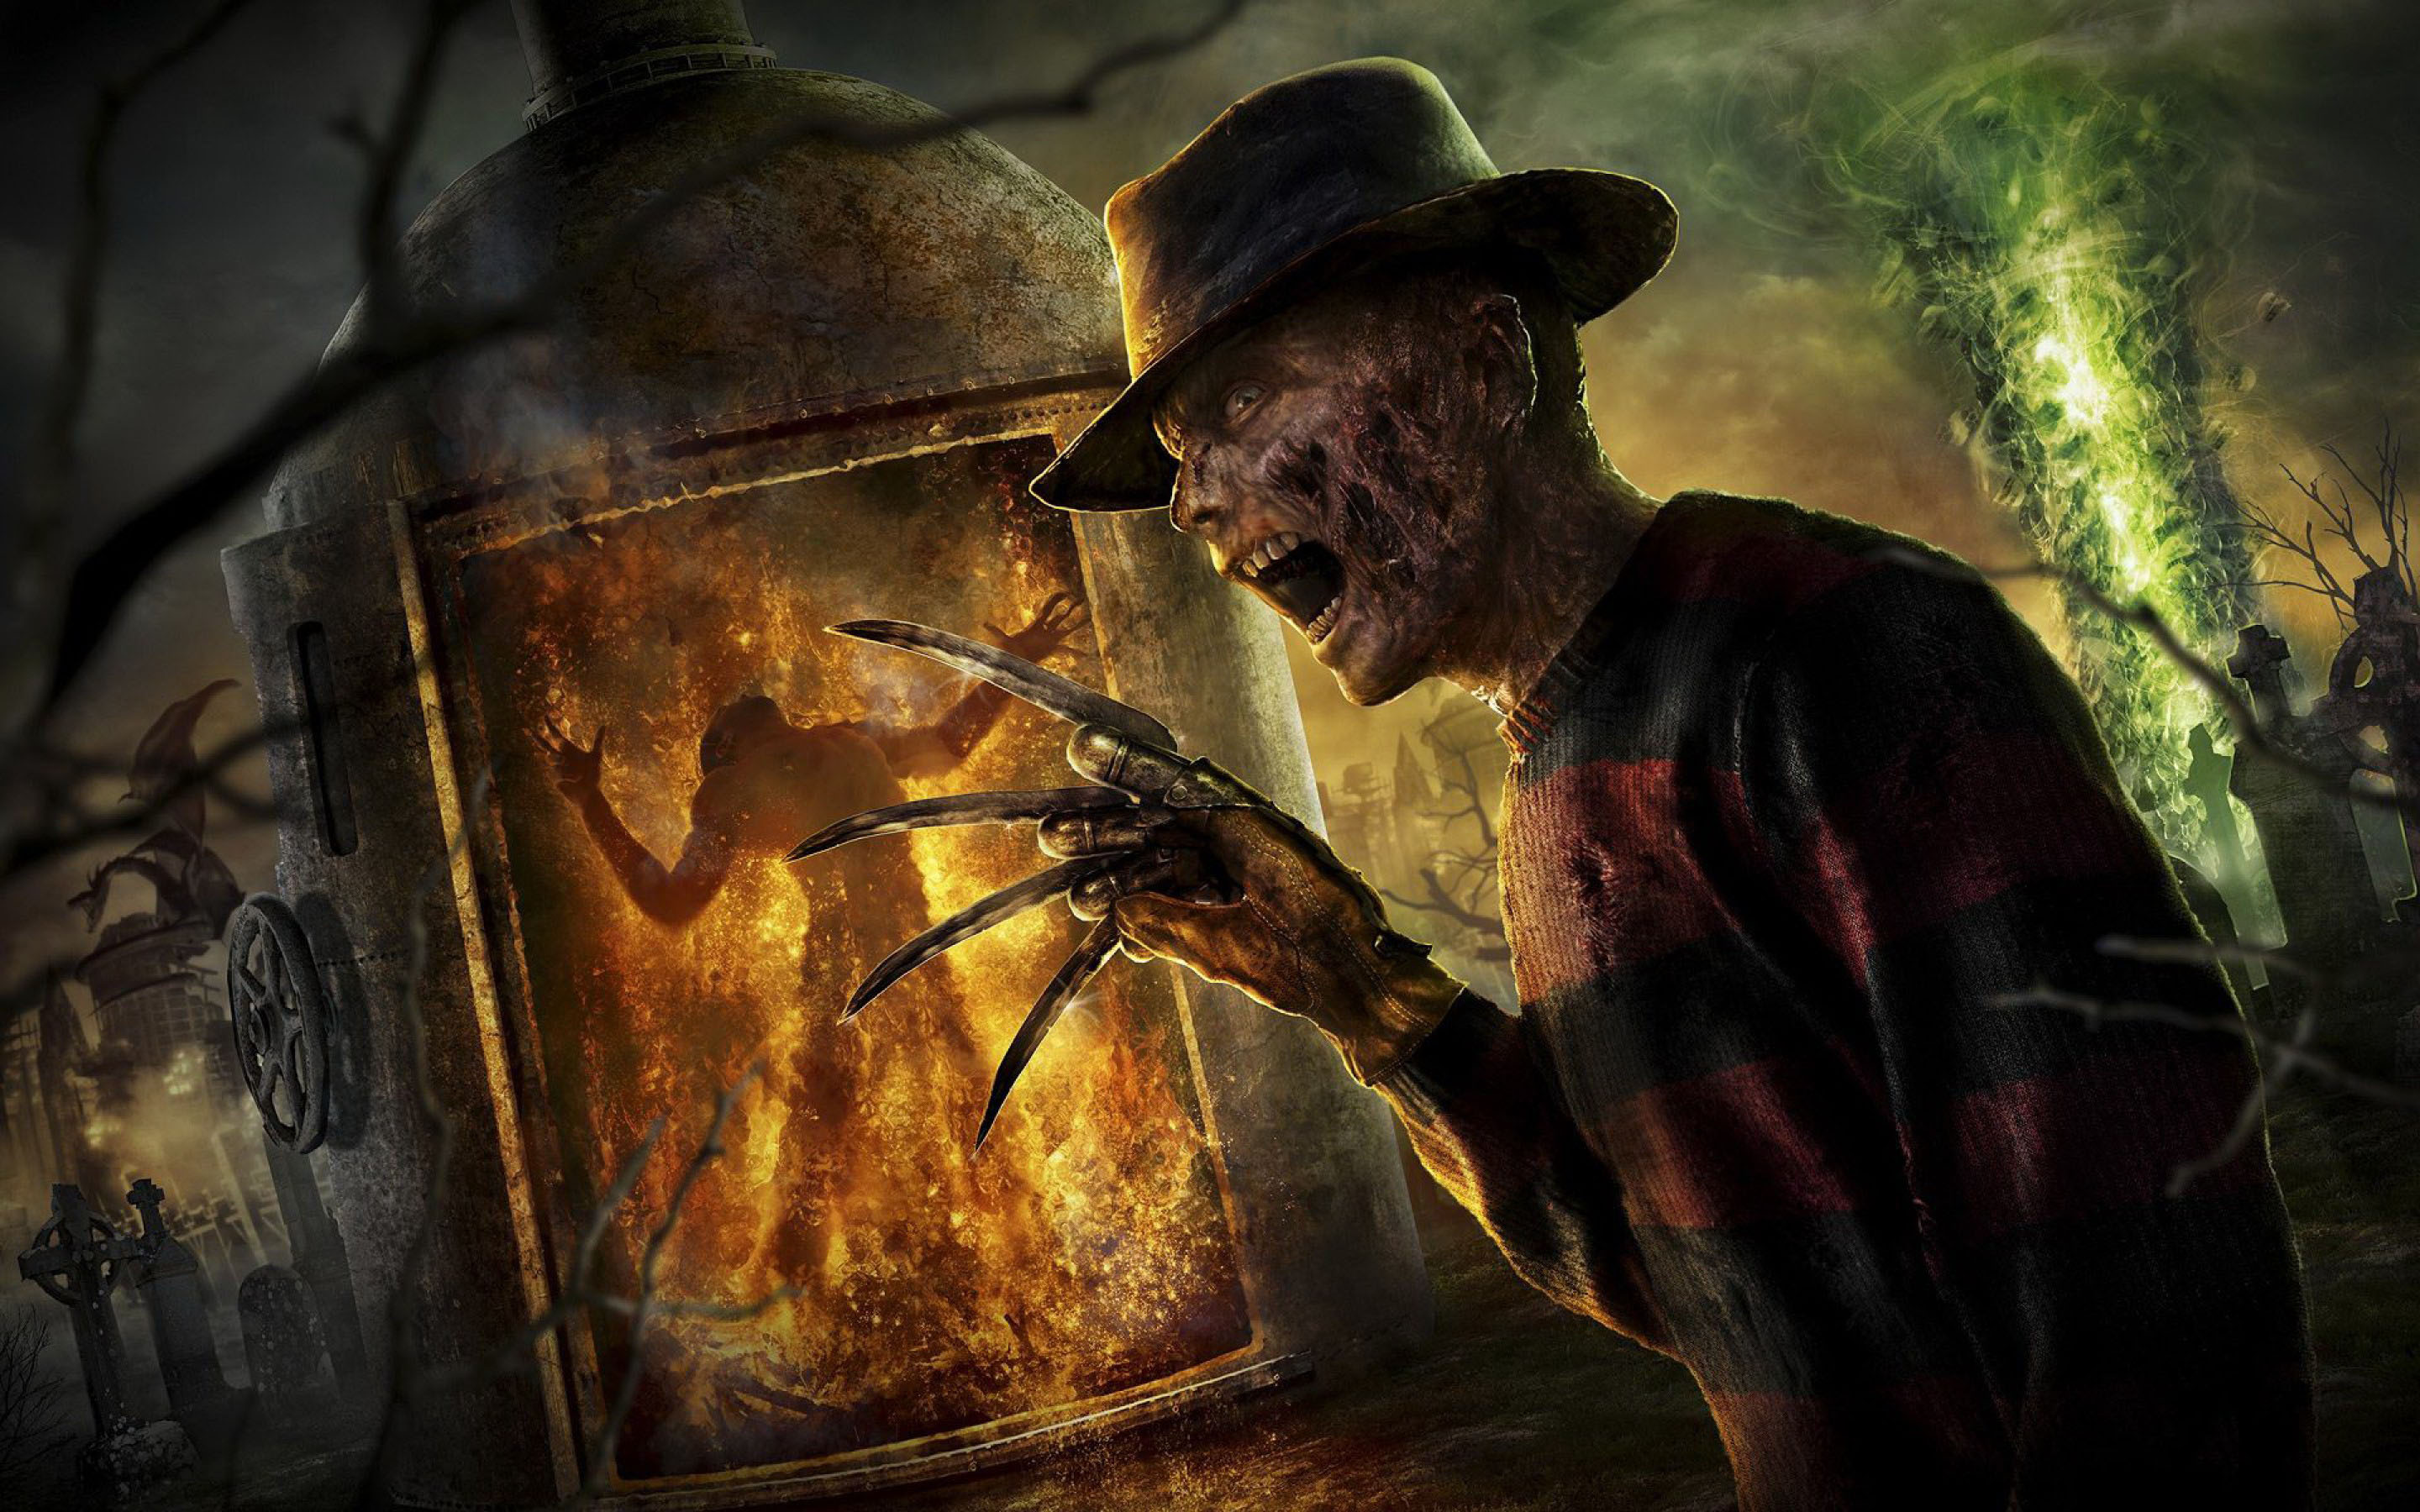 The infamous Freddy Krueger from A Nightmare on Elm Street